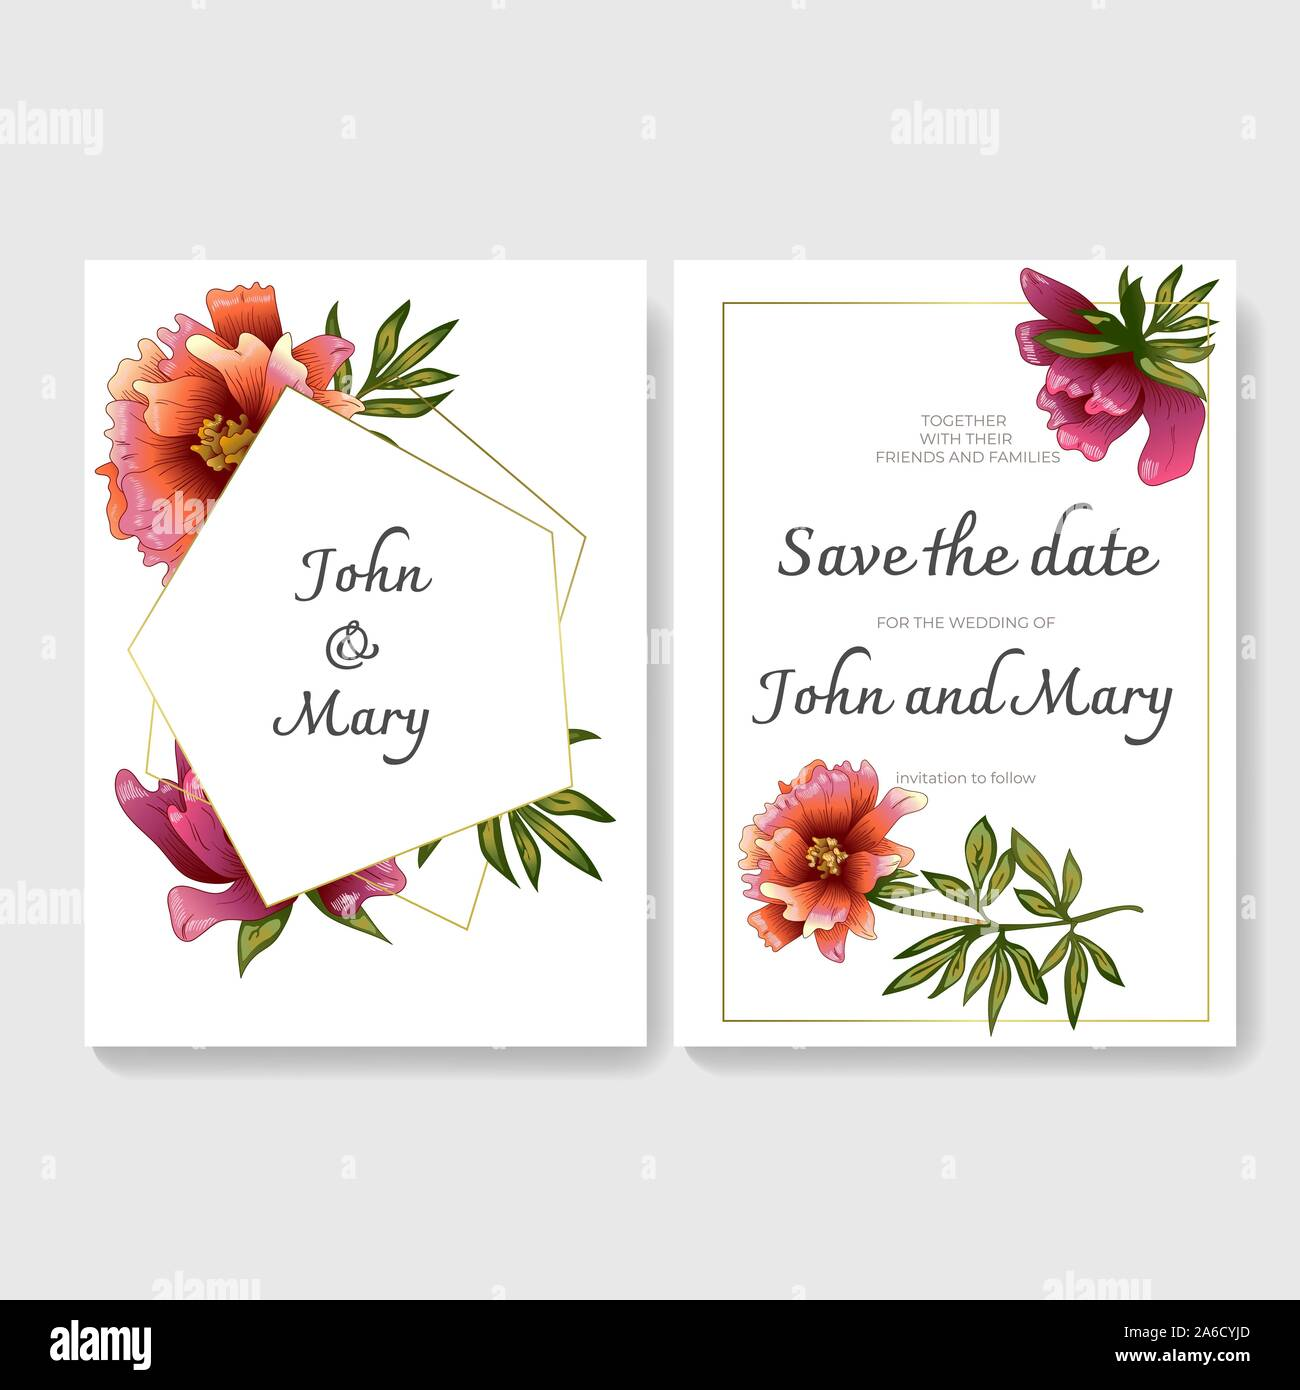 White Card Peony Of The Flower Vector Wedding Background Card Floral Decorative Border Stock Vector Image Art Alamy